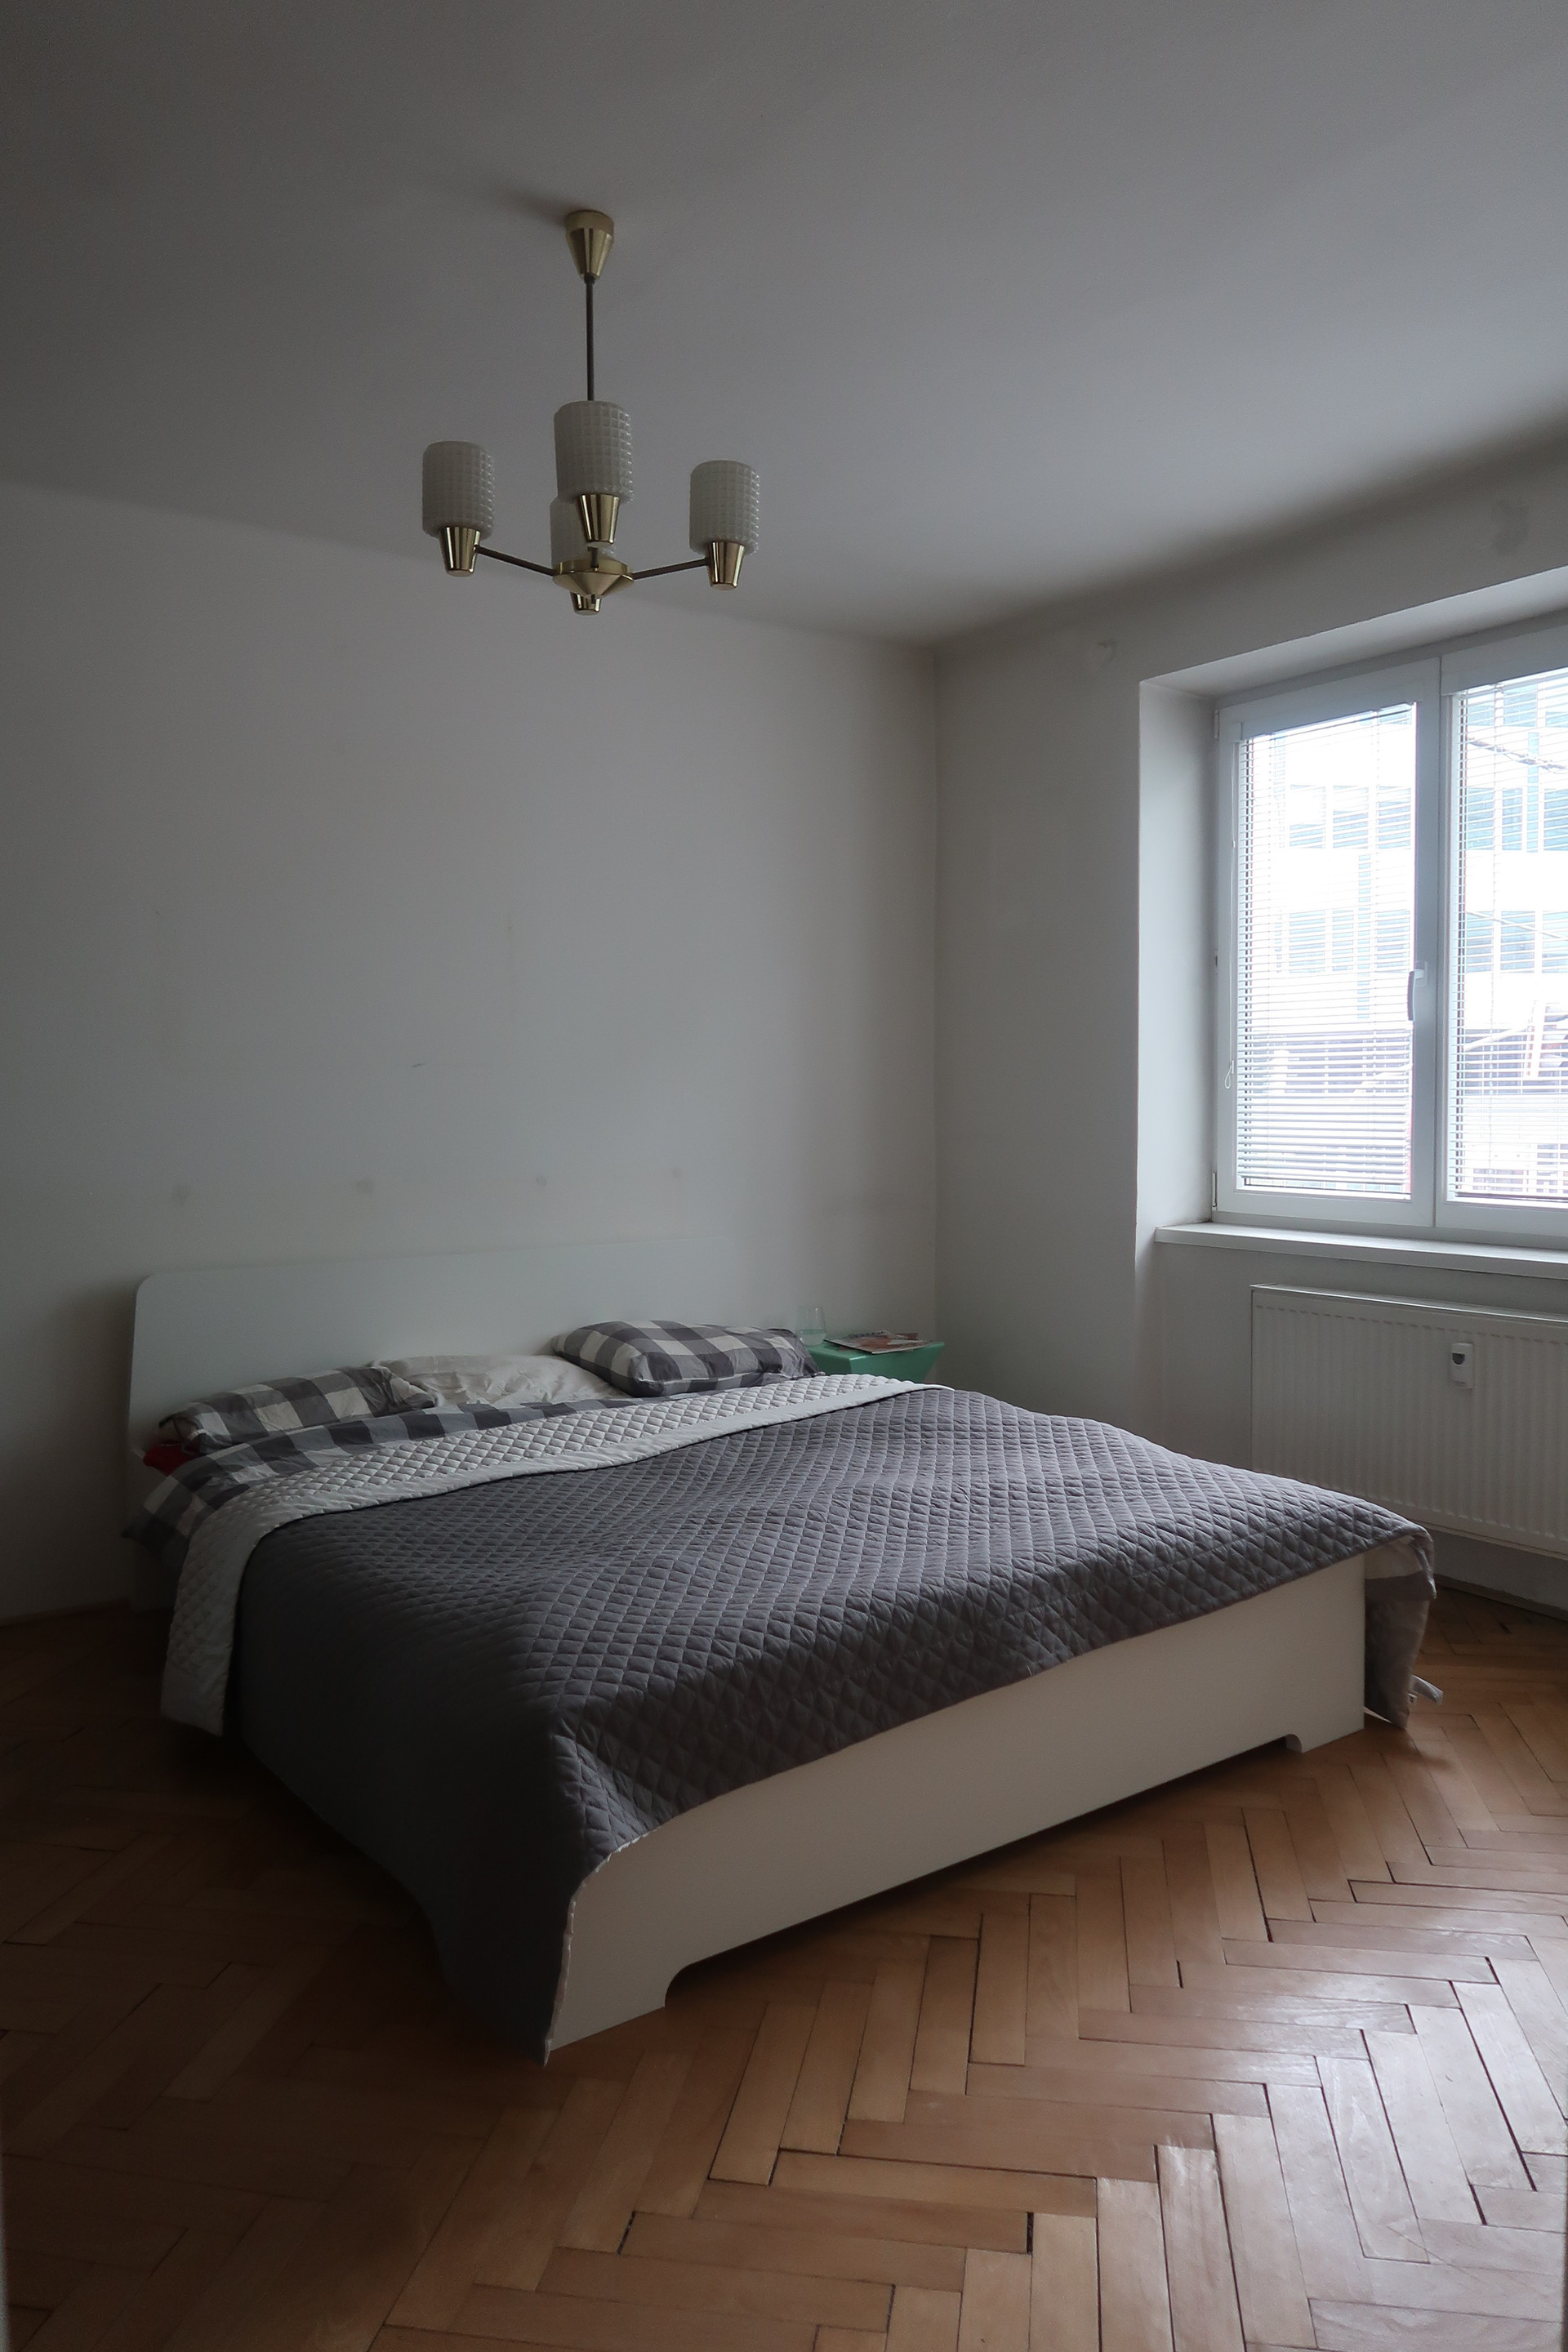 2-bedroom-apartment-near-city-center-e60a7f12498a71859e84701fdecfeabf